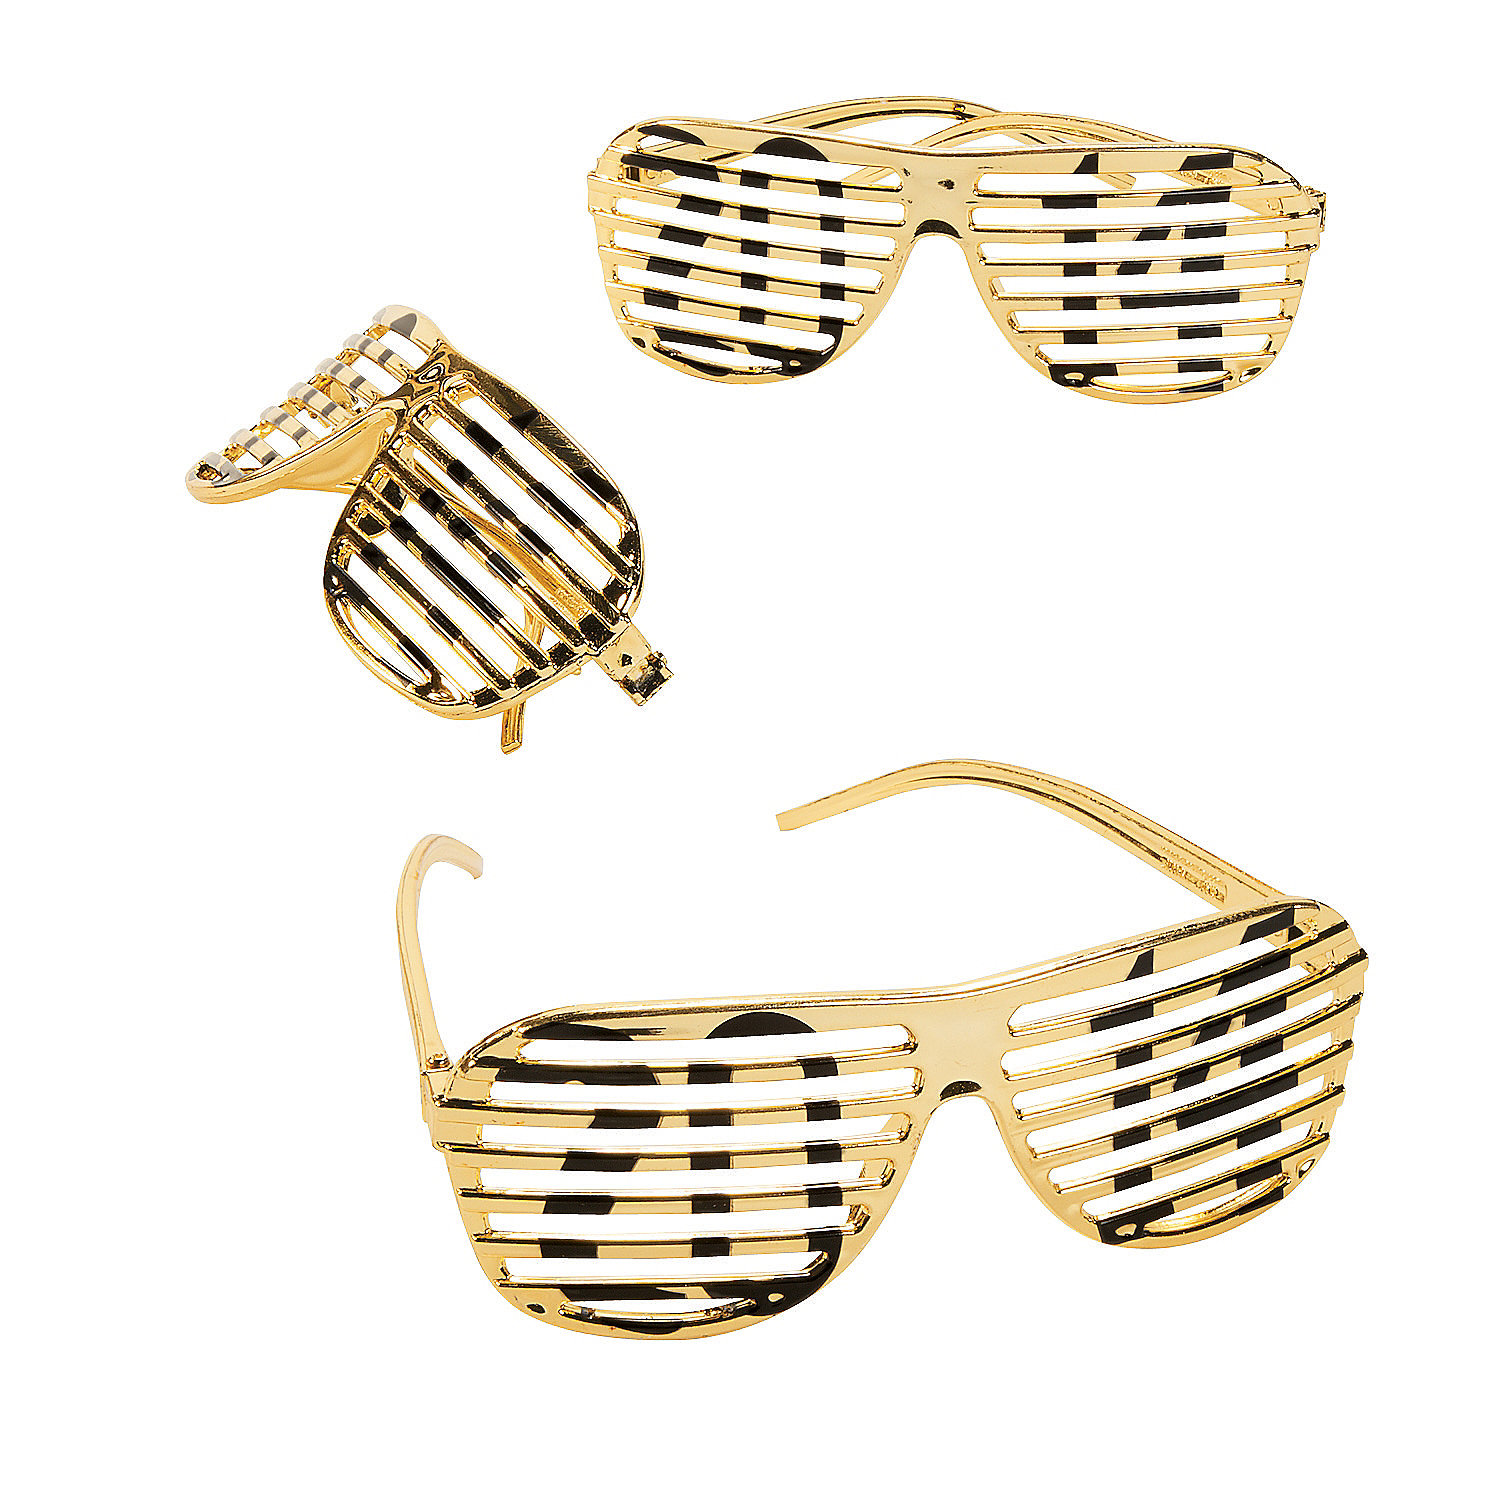 Gold Sunglasses 2014 2014 Gold Metallic Shutter